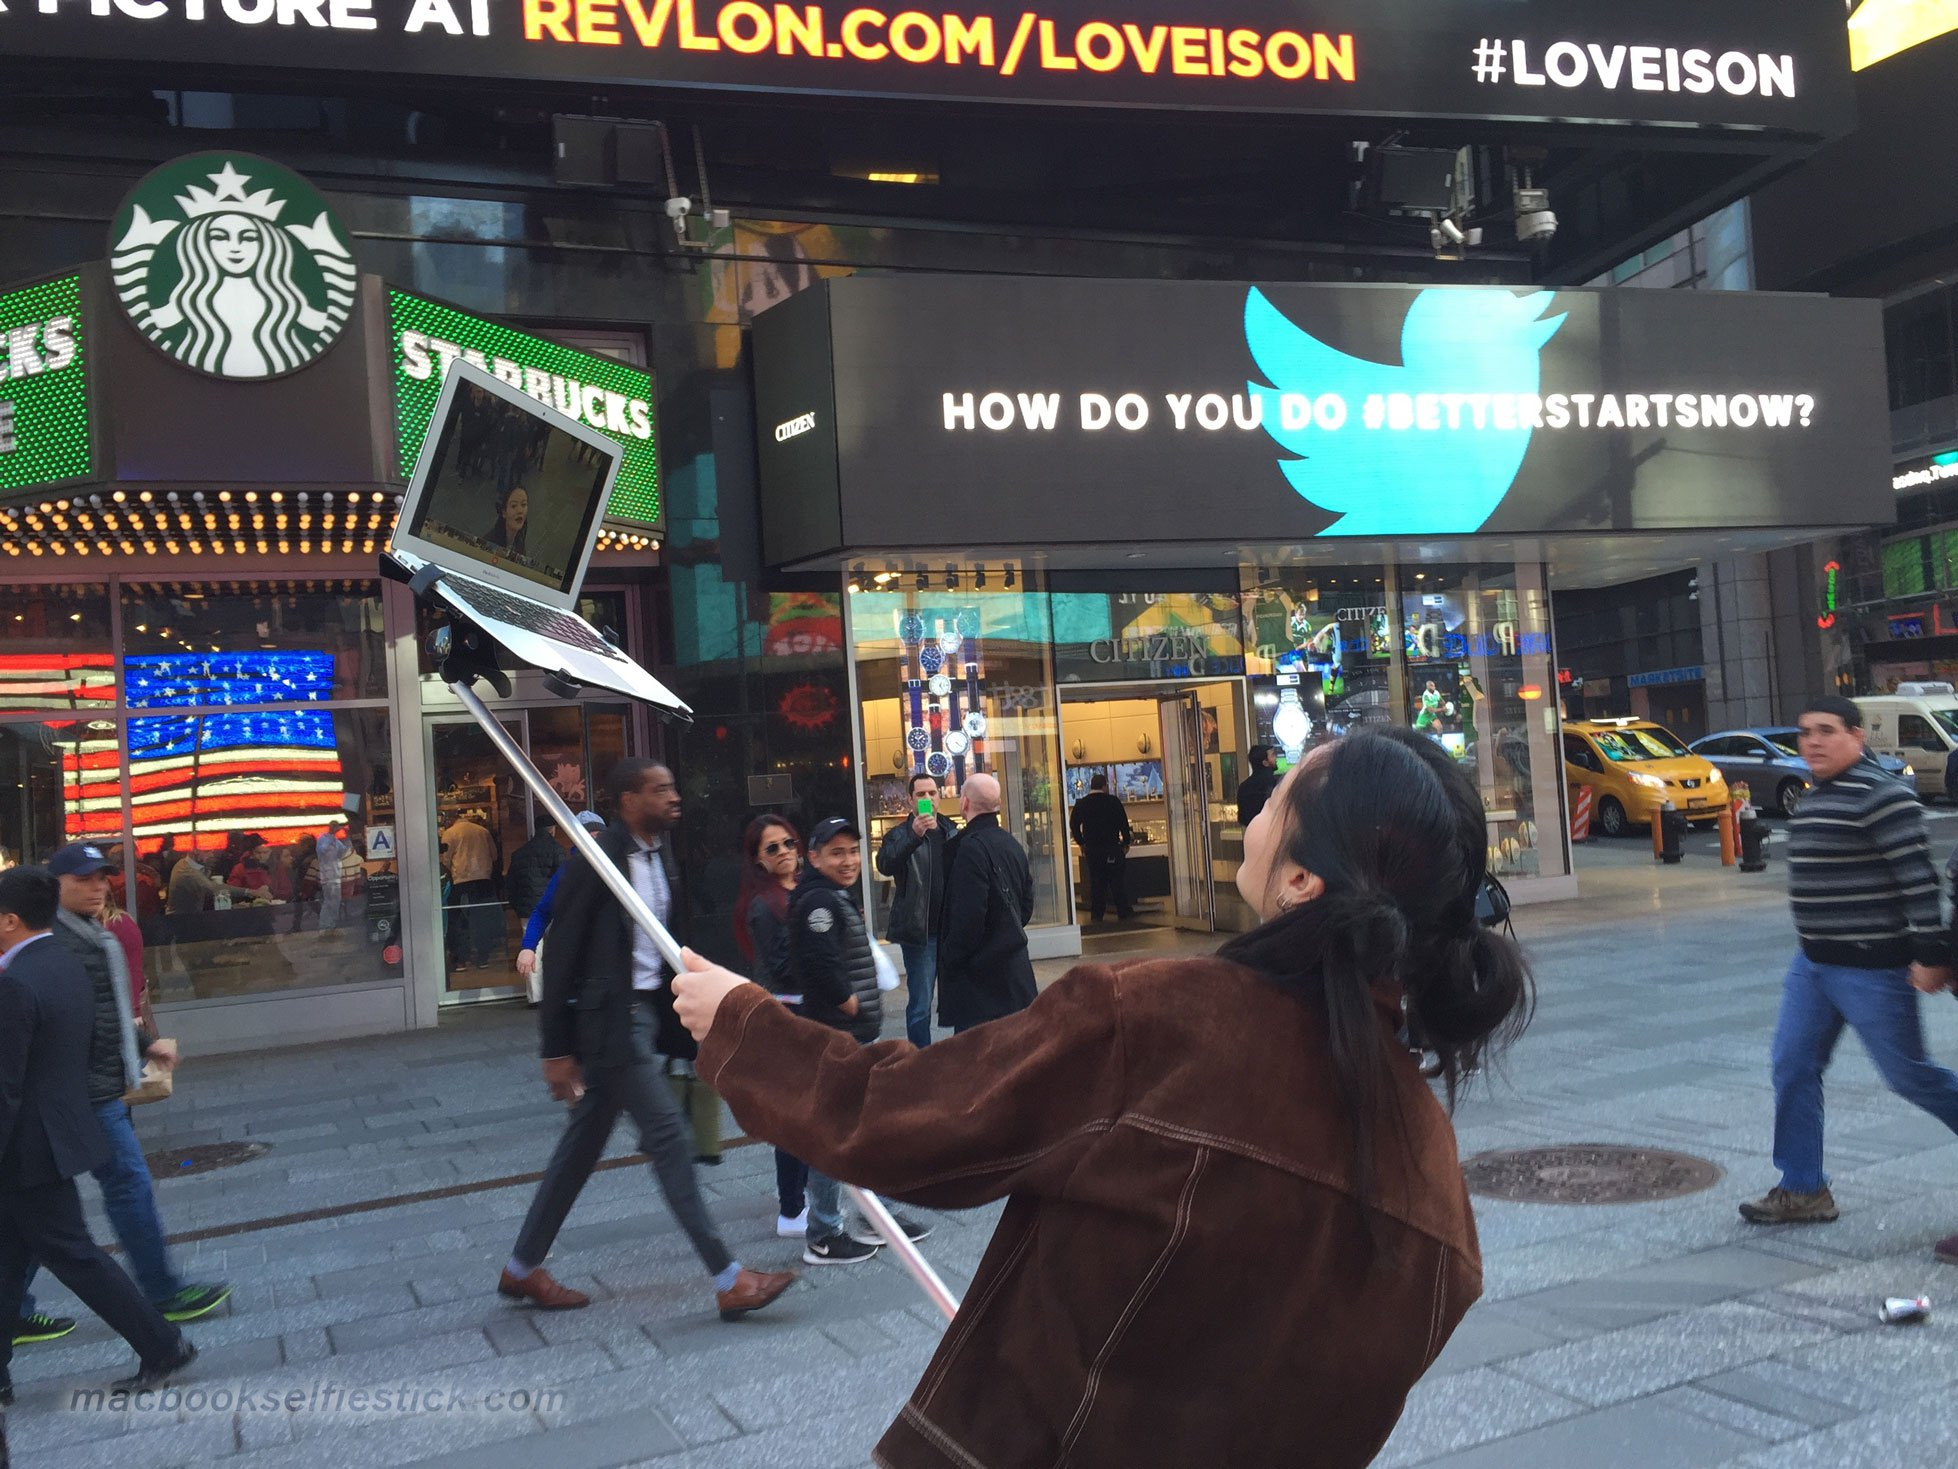 macbook-selfie-stick-6